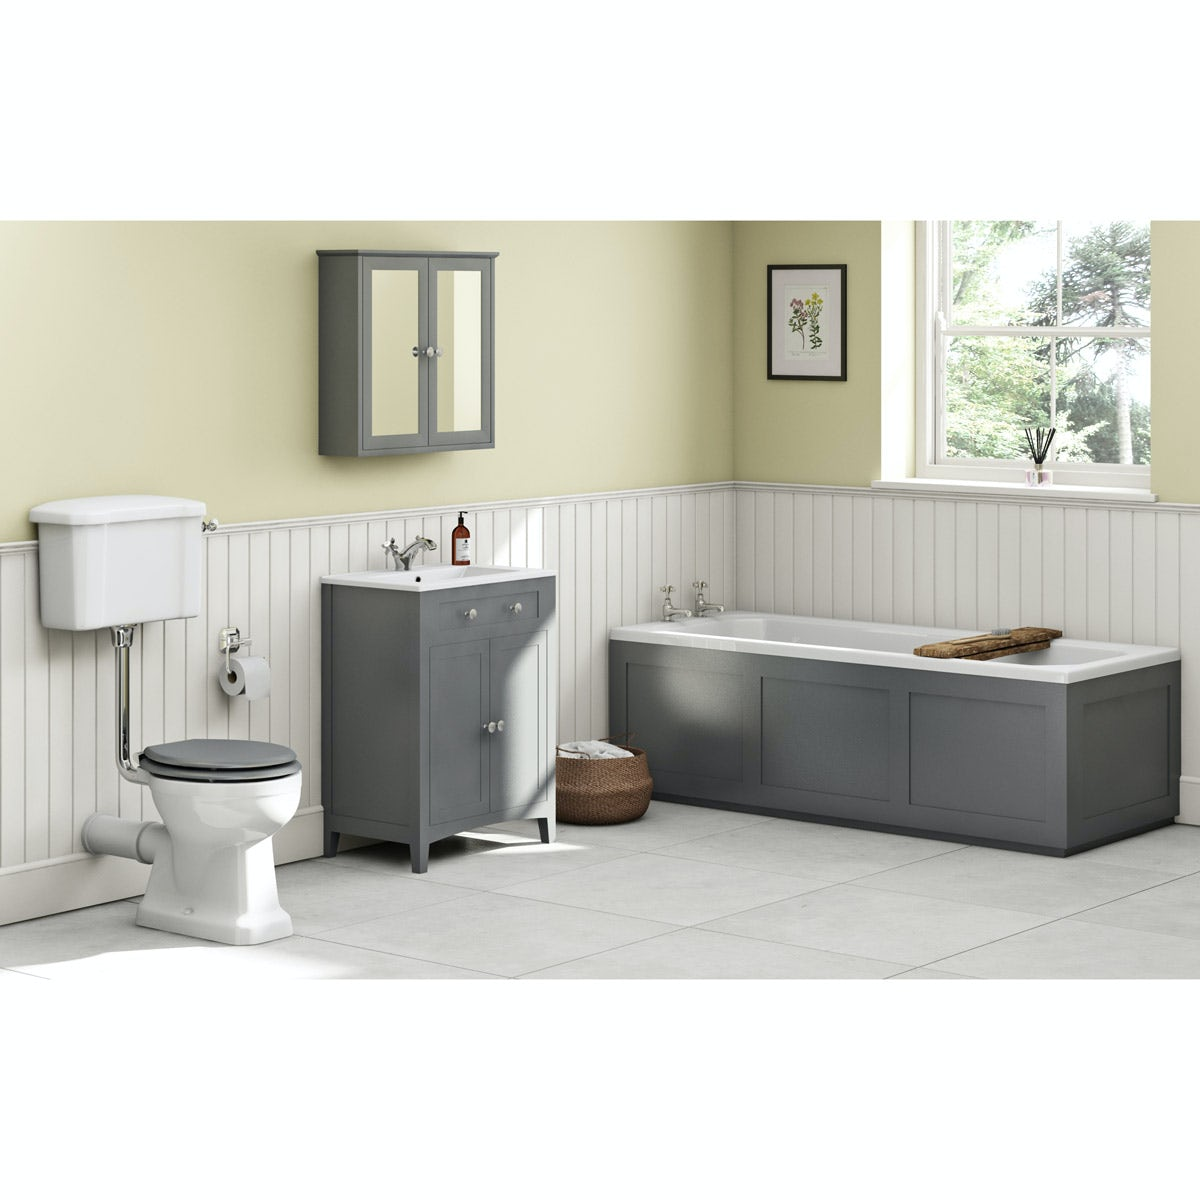 The Bath Co Camberley Satin Grey Low Level Furniture